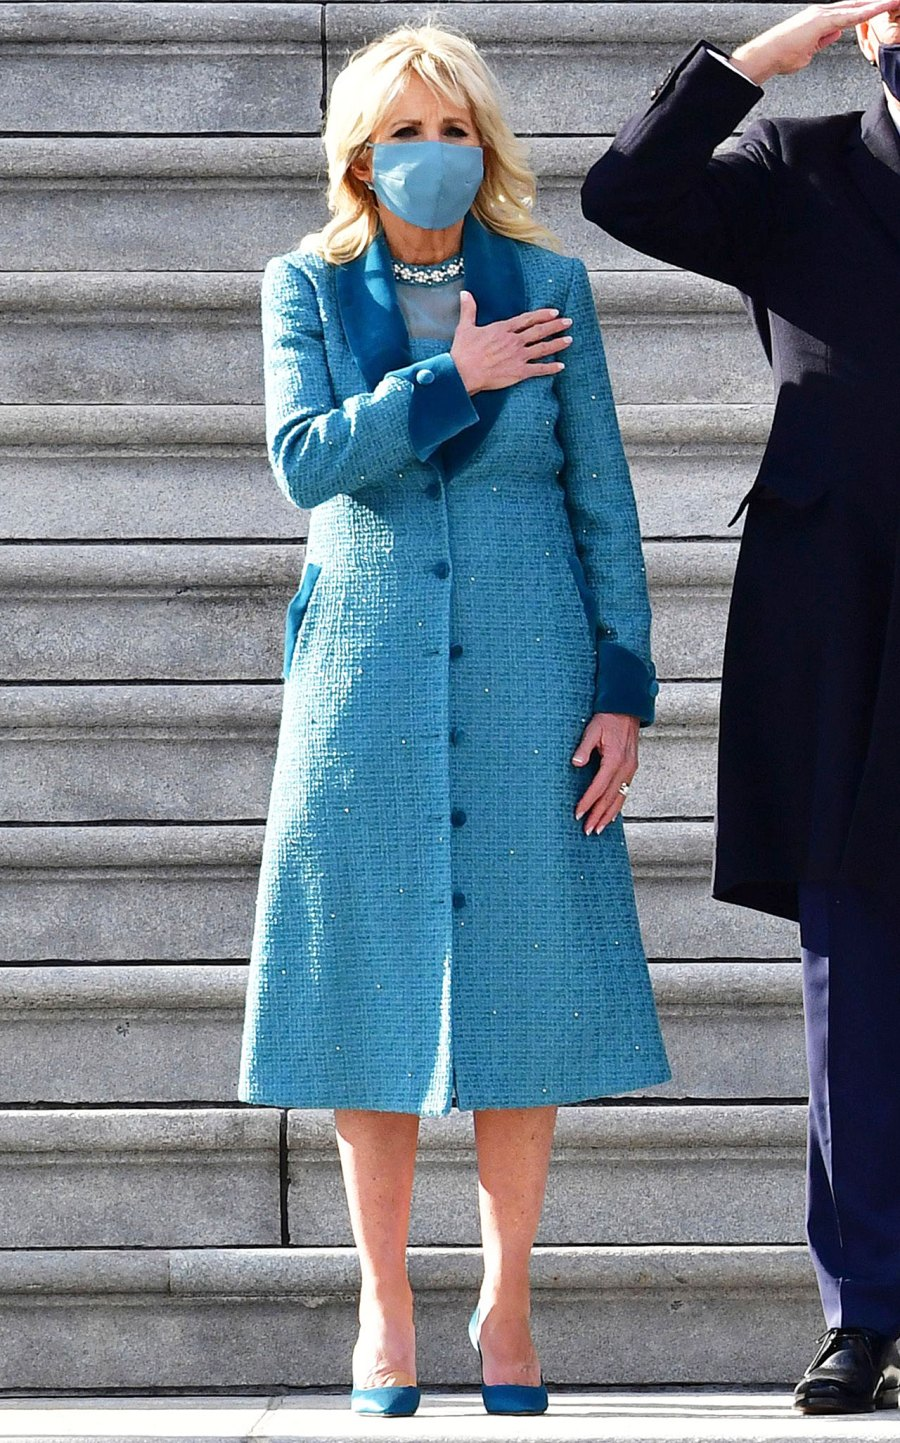 Inauguration Dr Jill Biden Most Stylish Moments Since Becoming FLOTUS